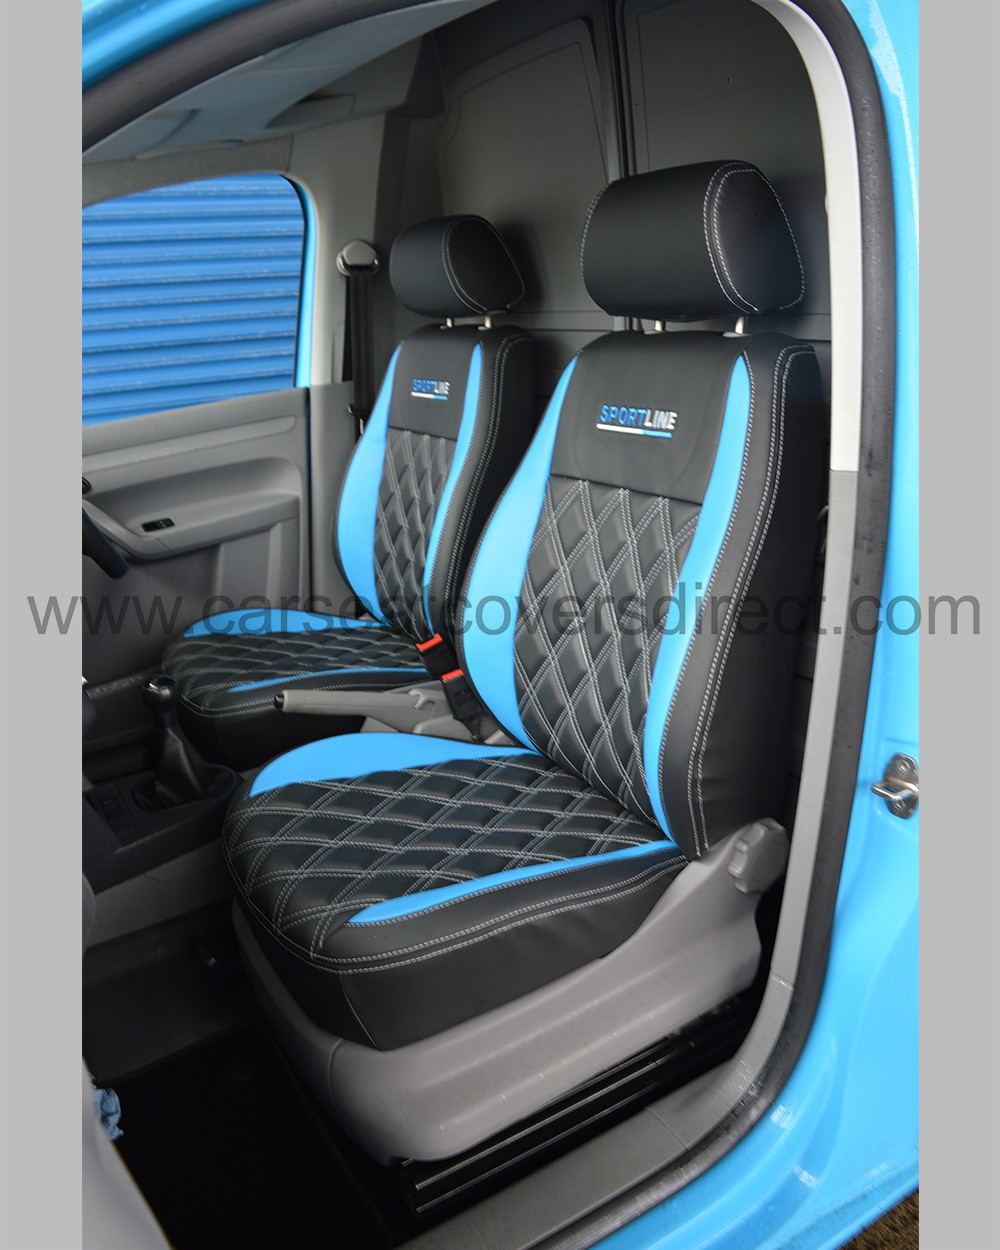 volkswagon seat covers the wagon. Black Bedroom Furniture Sets. Home Design Ideas